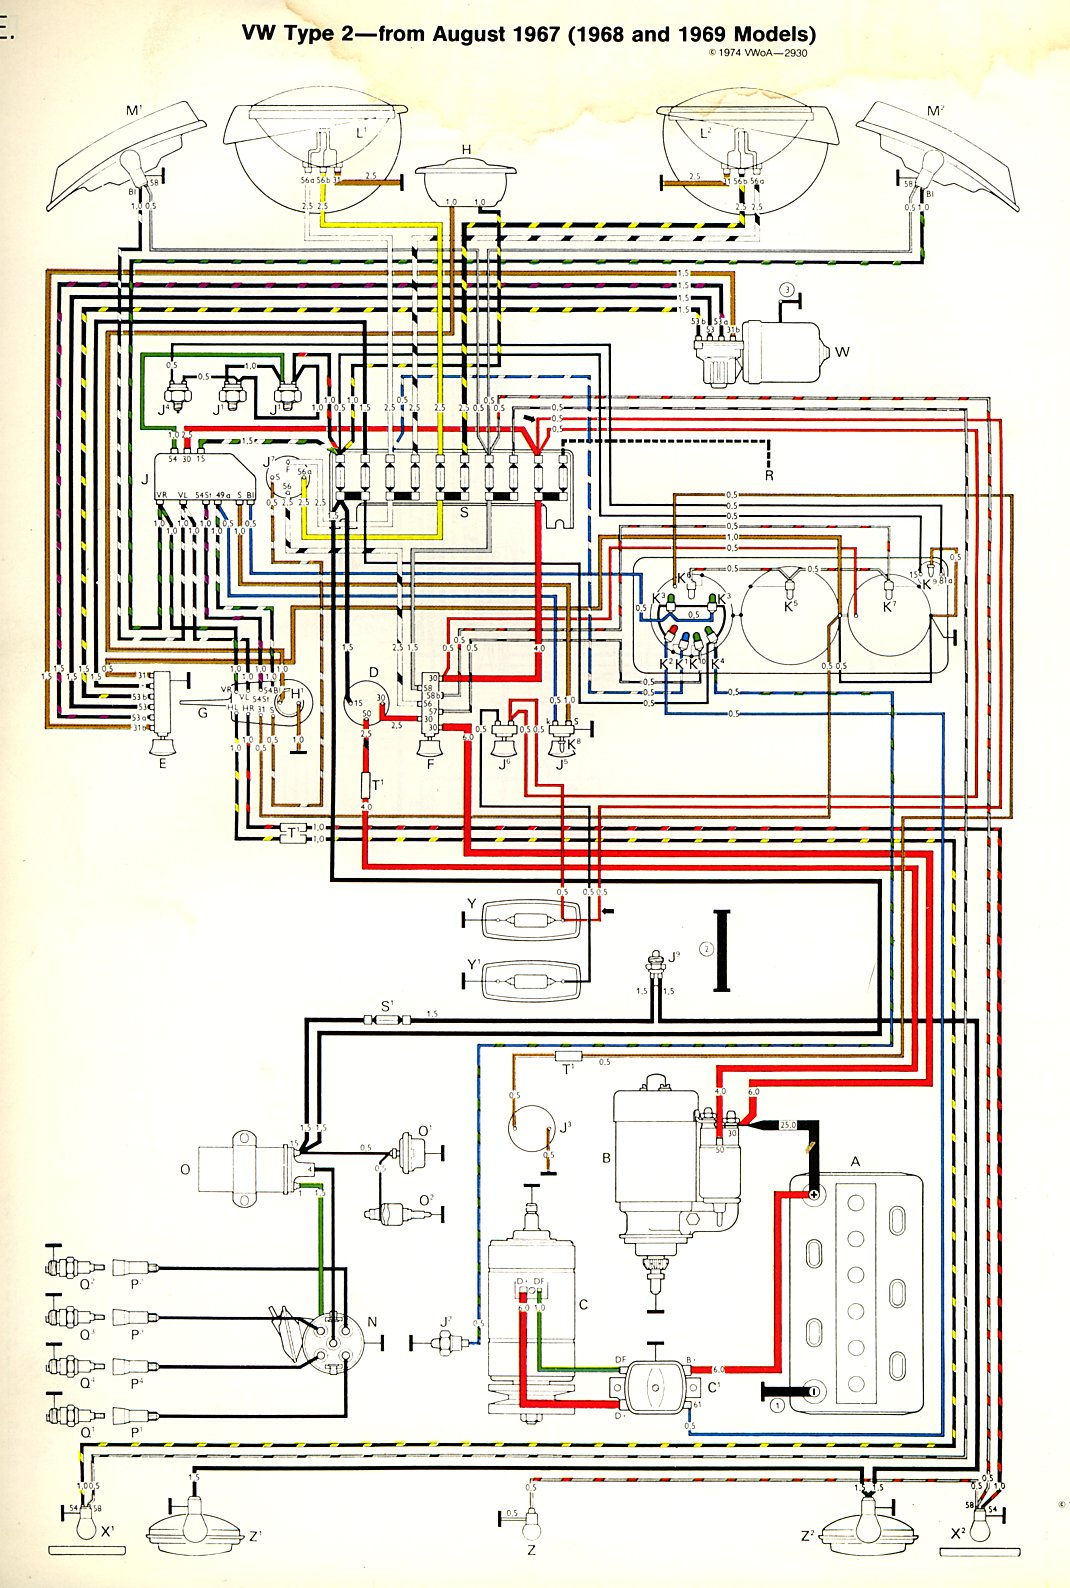 baybus_6869a thesamba com type 2 wiring diagrams 1973 vw wiring diagram at nearapp.co